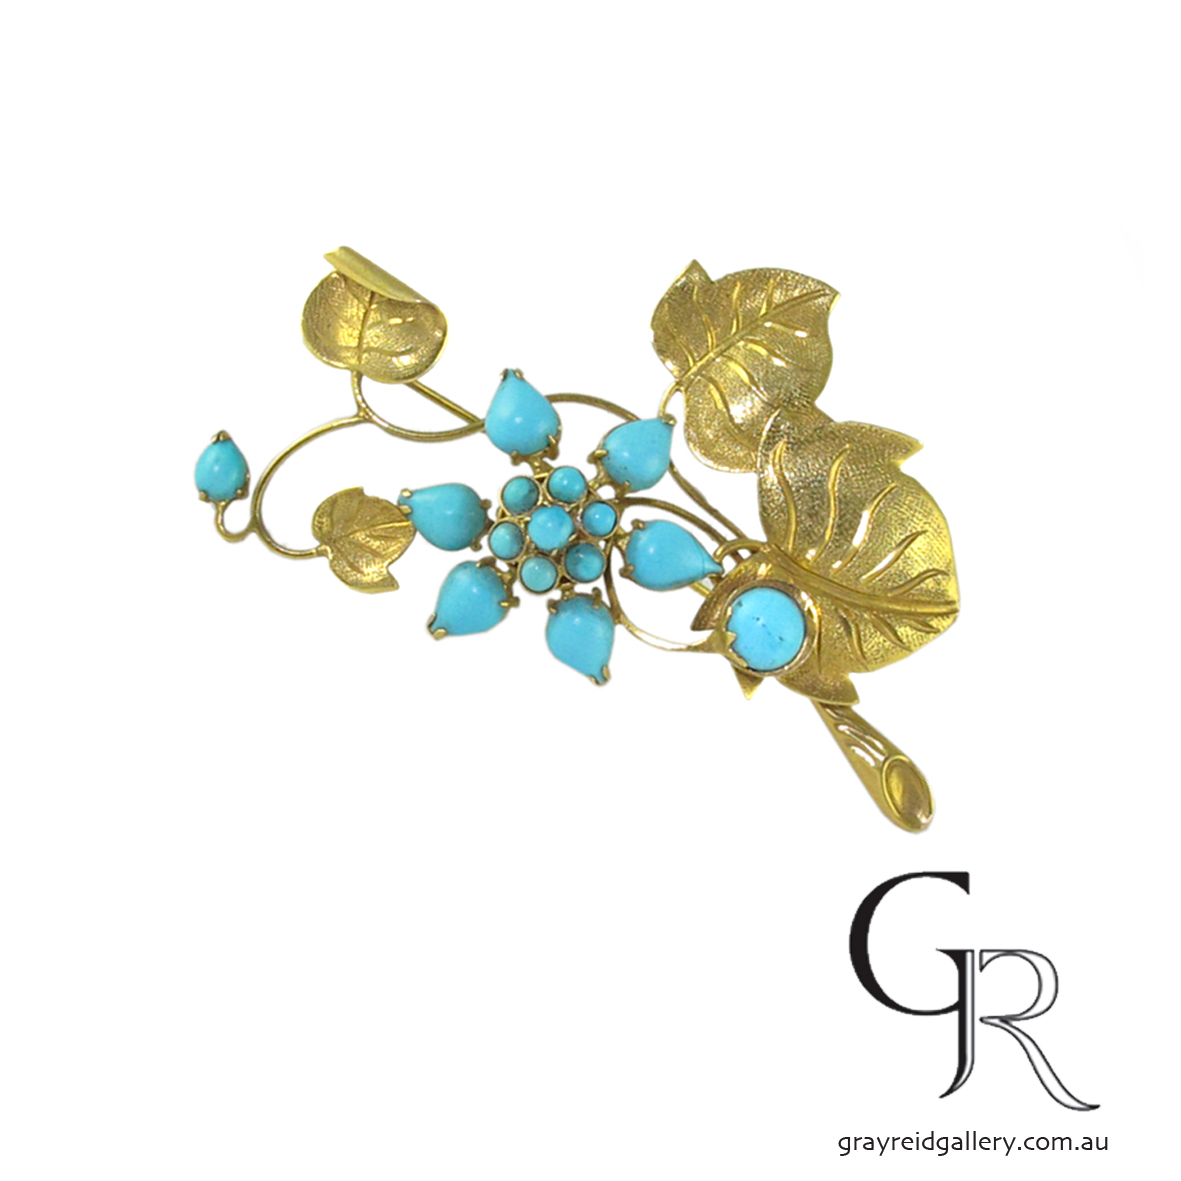 Turquoise Antique Brooches Melbourne Gray Reid Gallery.JPG